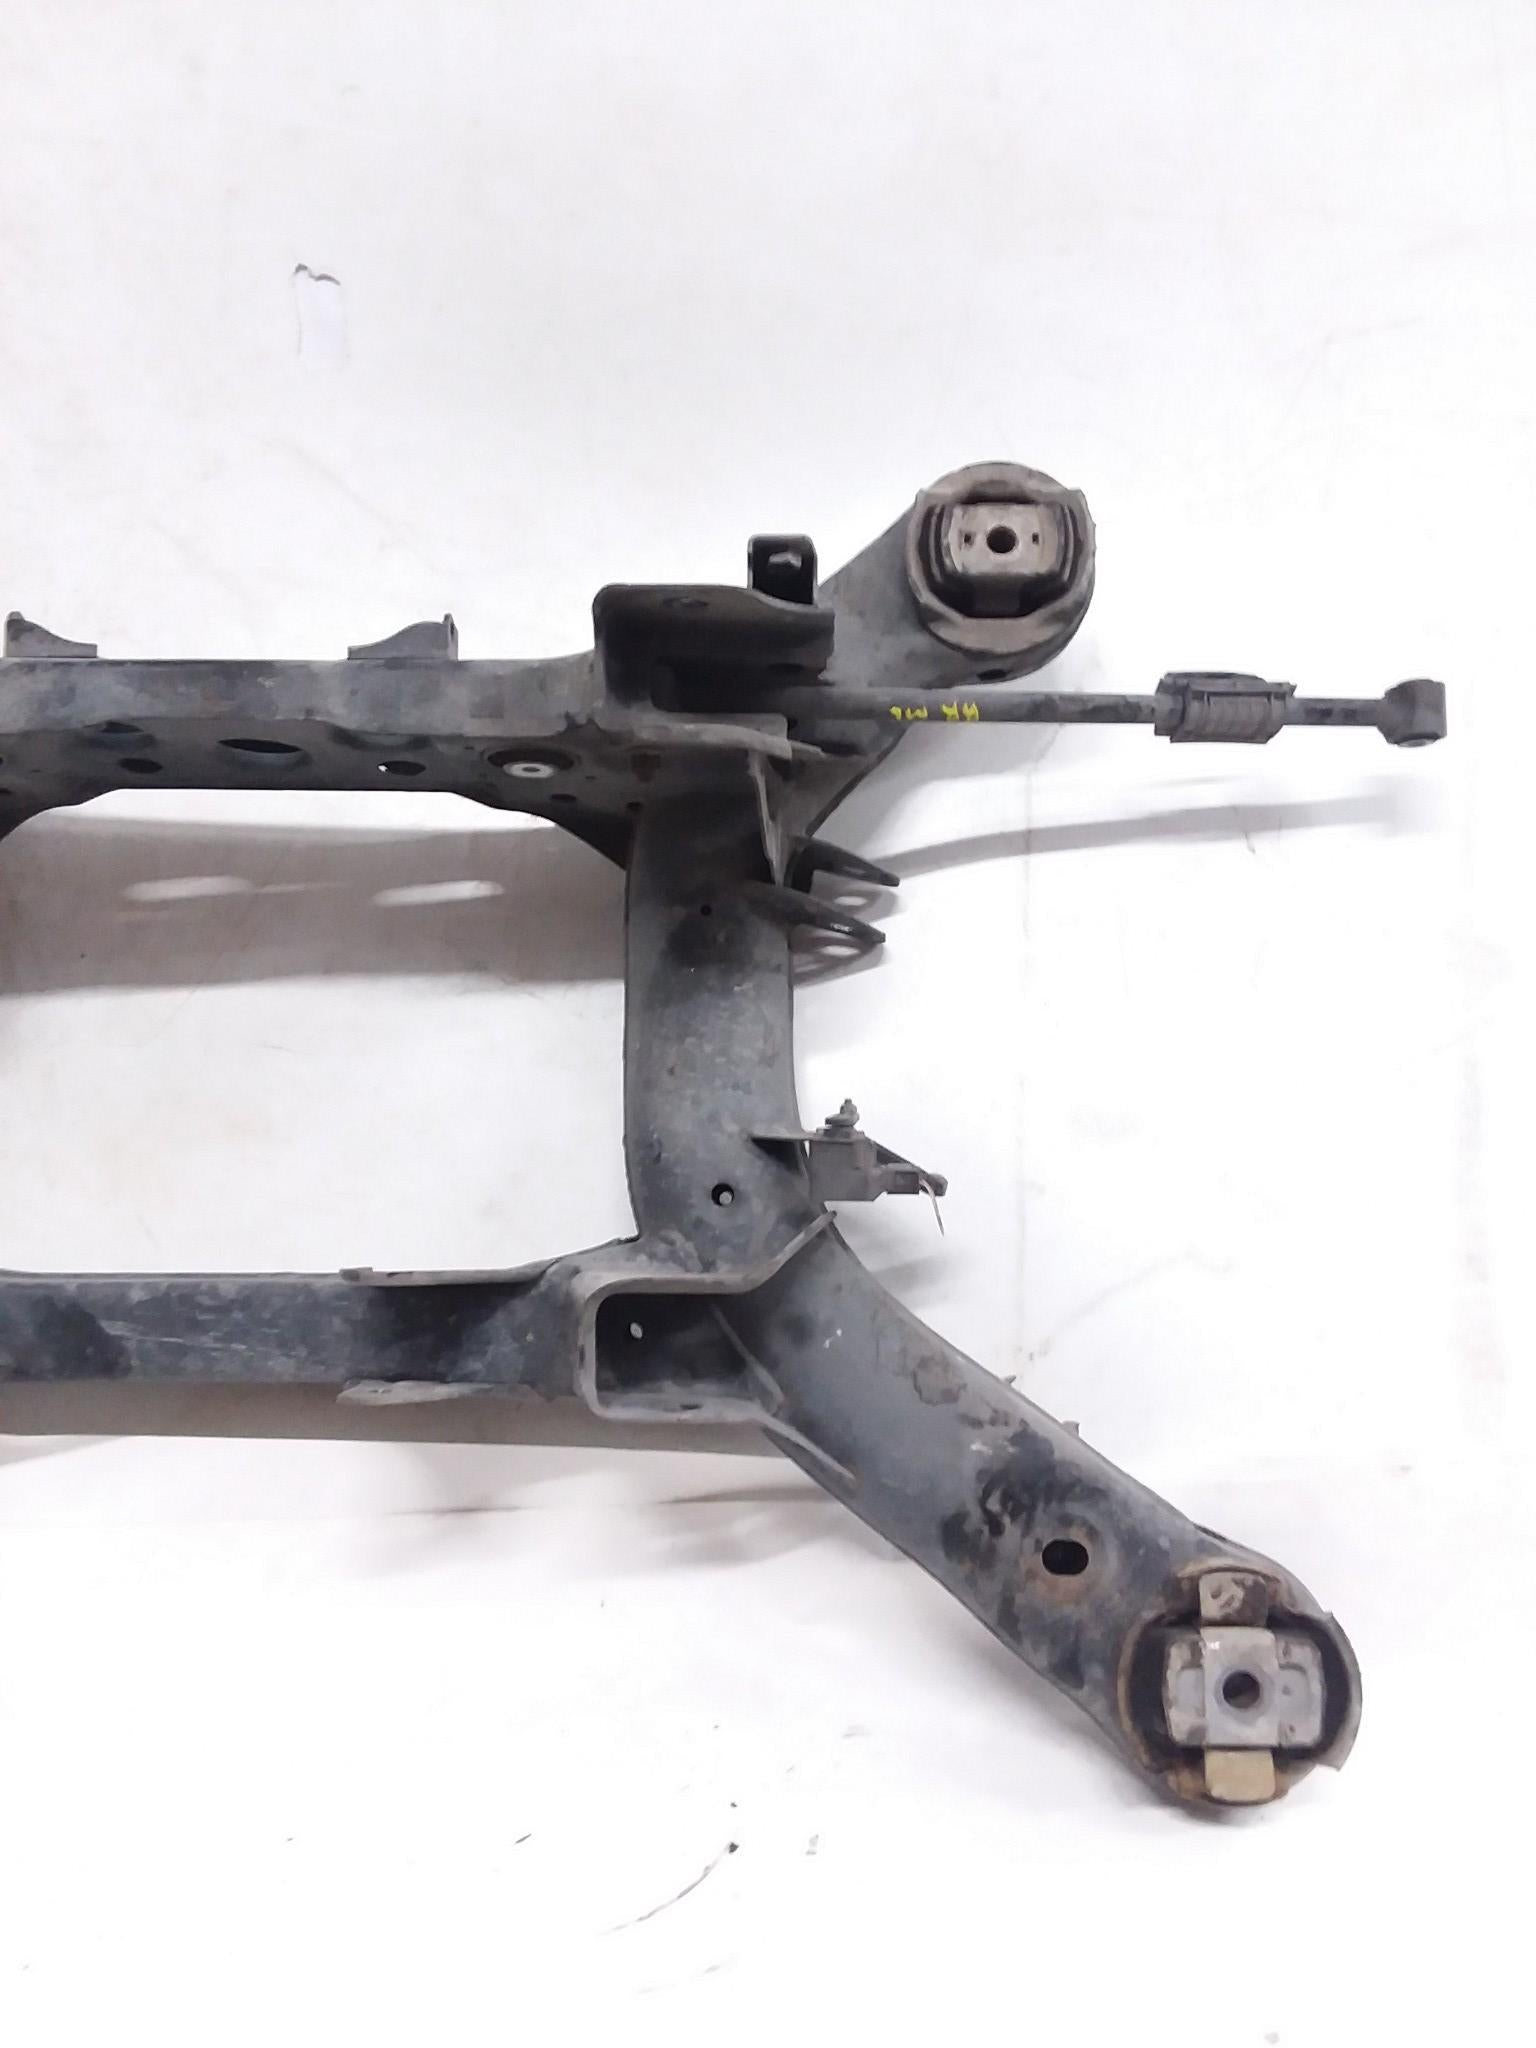 06-11 MERCEDES ML350 ML320 W164 REAR CRADLE CROSSMEMBER SUBFRAME 1643500132 OEM - CR Auto Parts